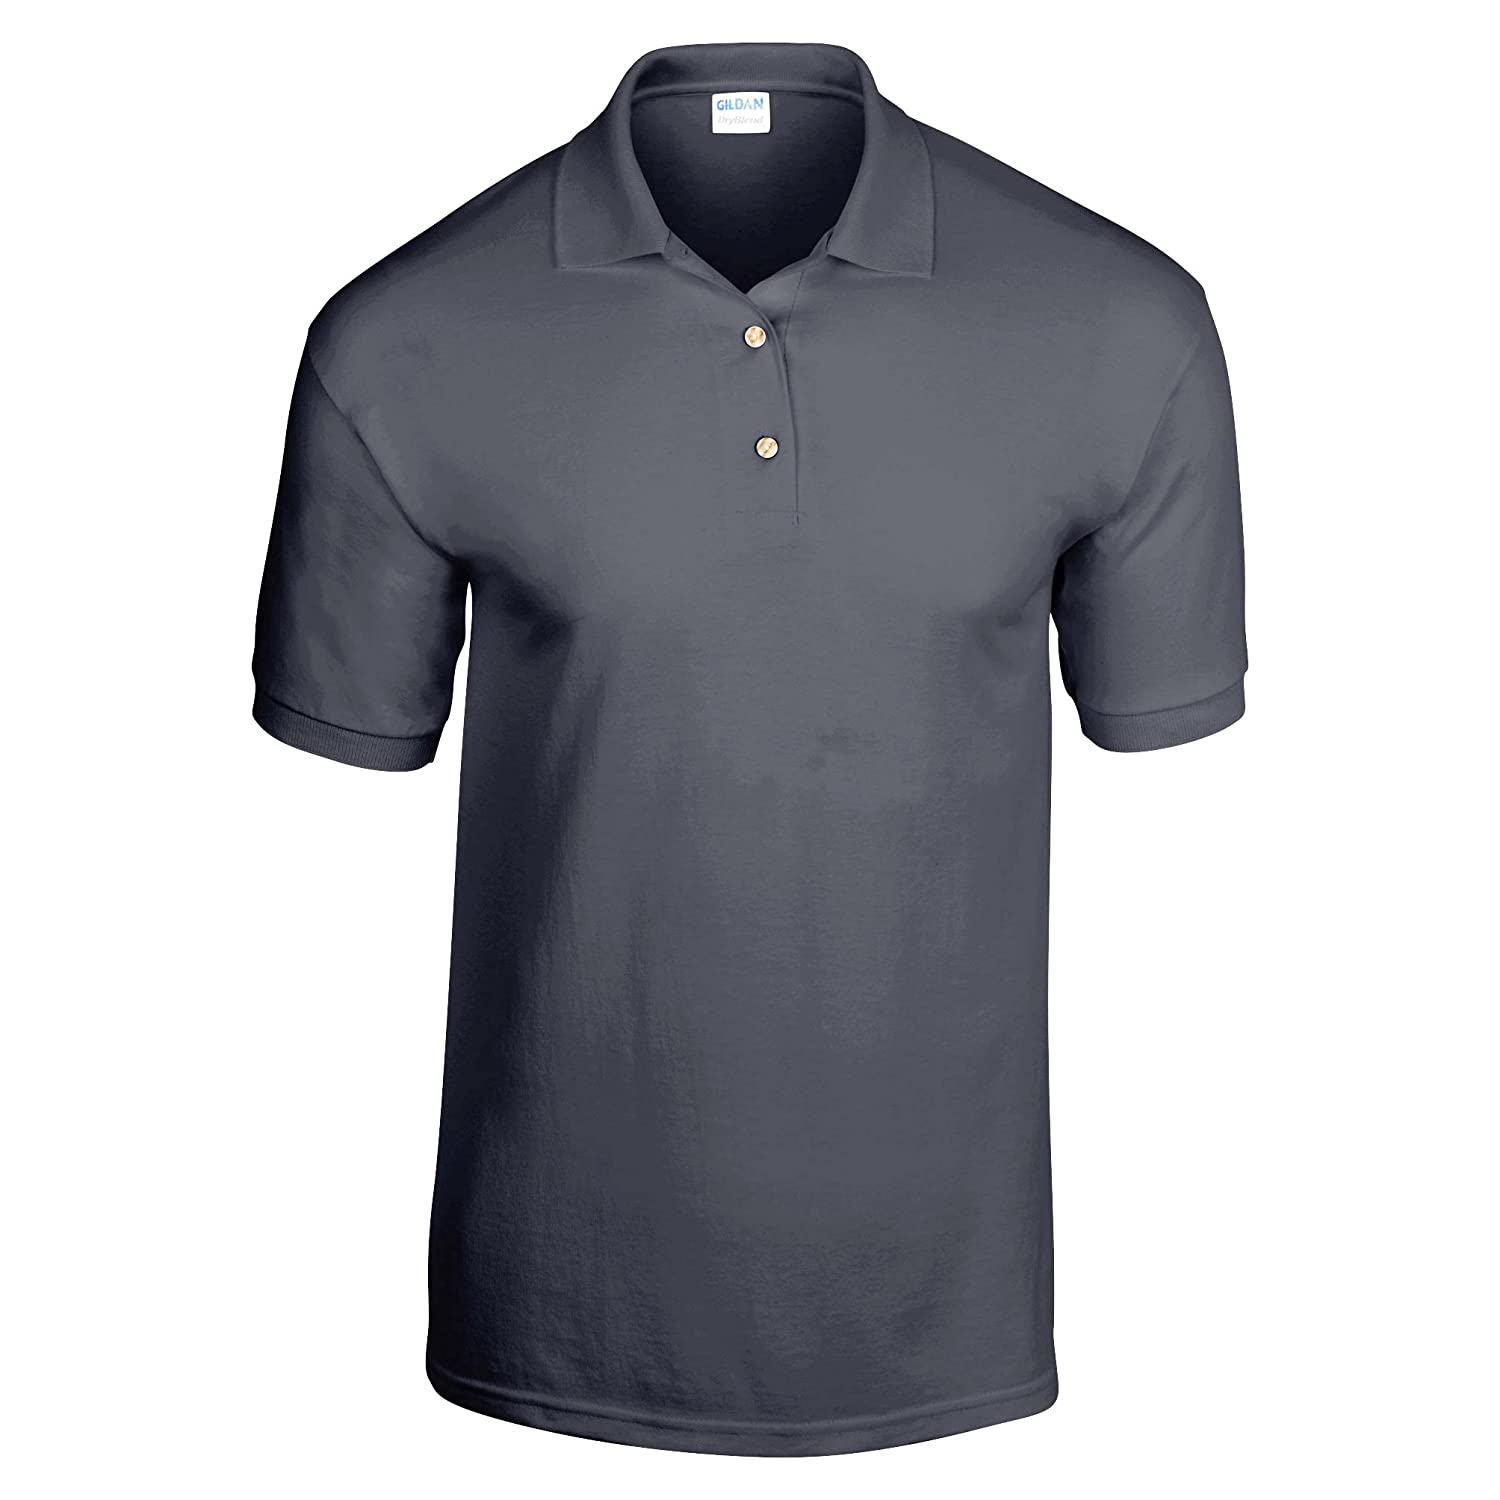 Gildan Adult Dryblend Jersey Short Sleeve Polo Shirt At Amazon Mens